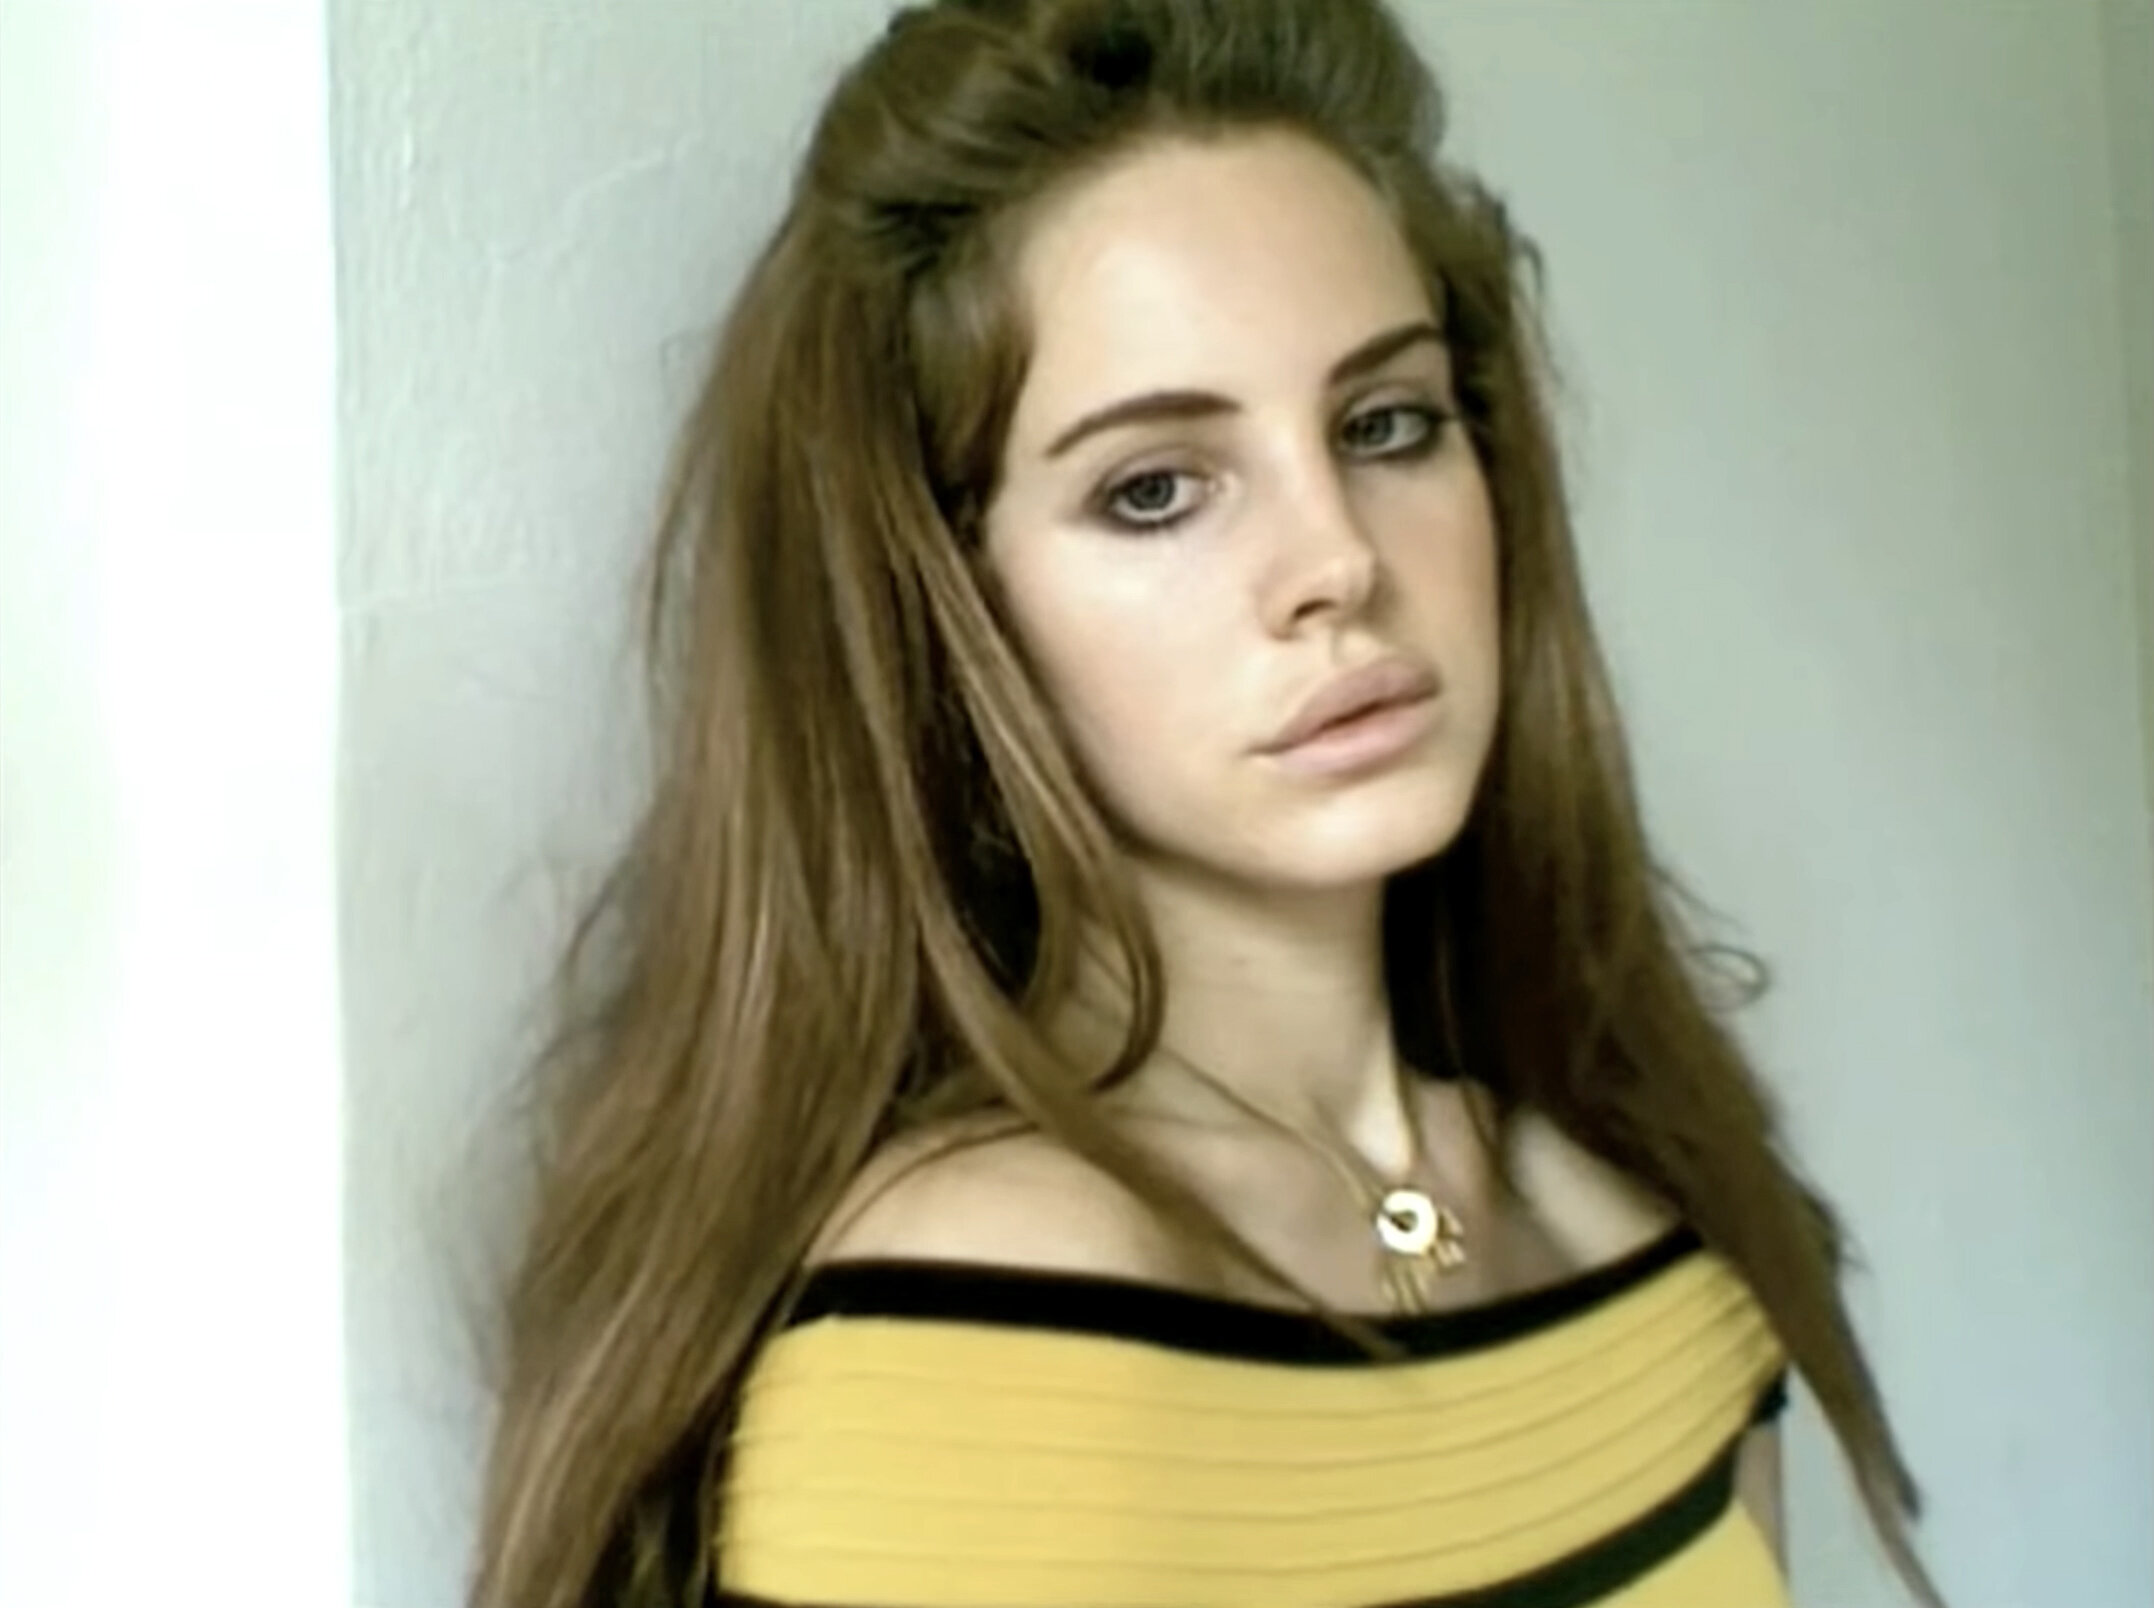 Observing Lana Del Rey S Evolution Through Her Unreleased Songs Nymphea Magazine